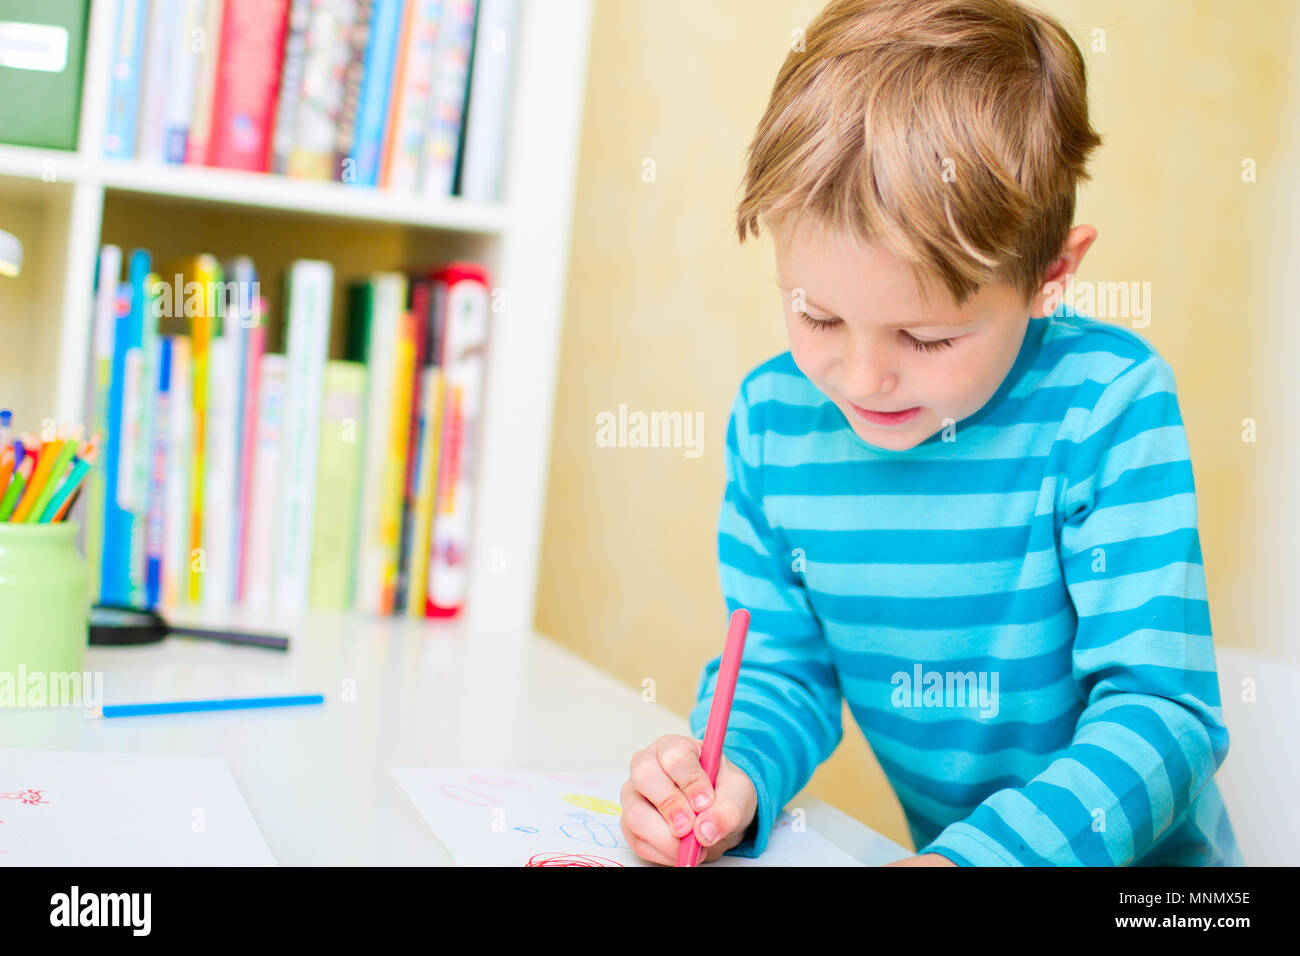 Portrait of cute happy schoolkid at home making homework - Stock Image